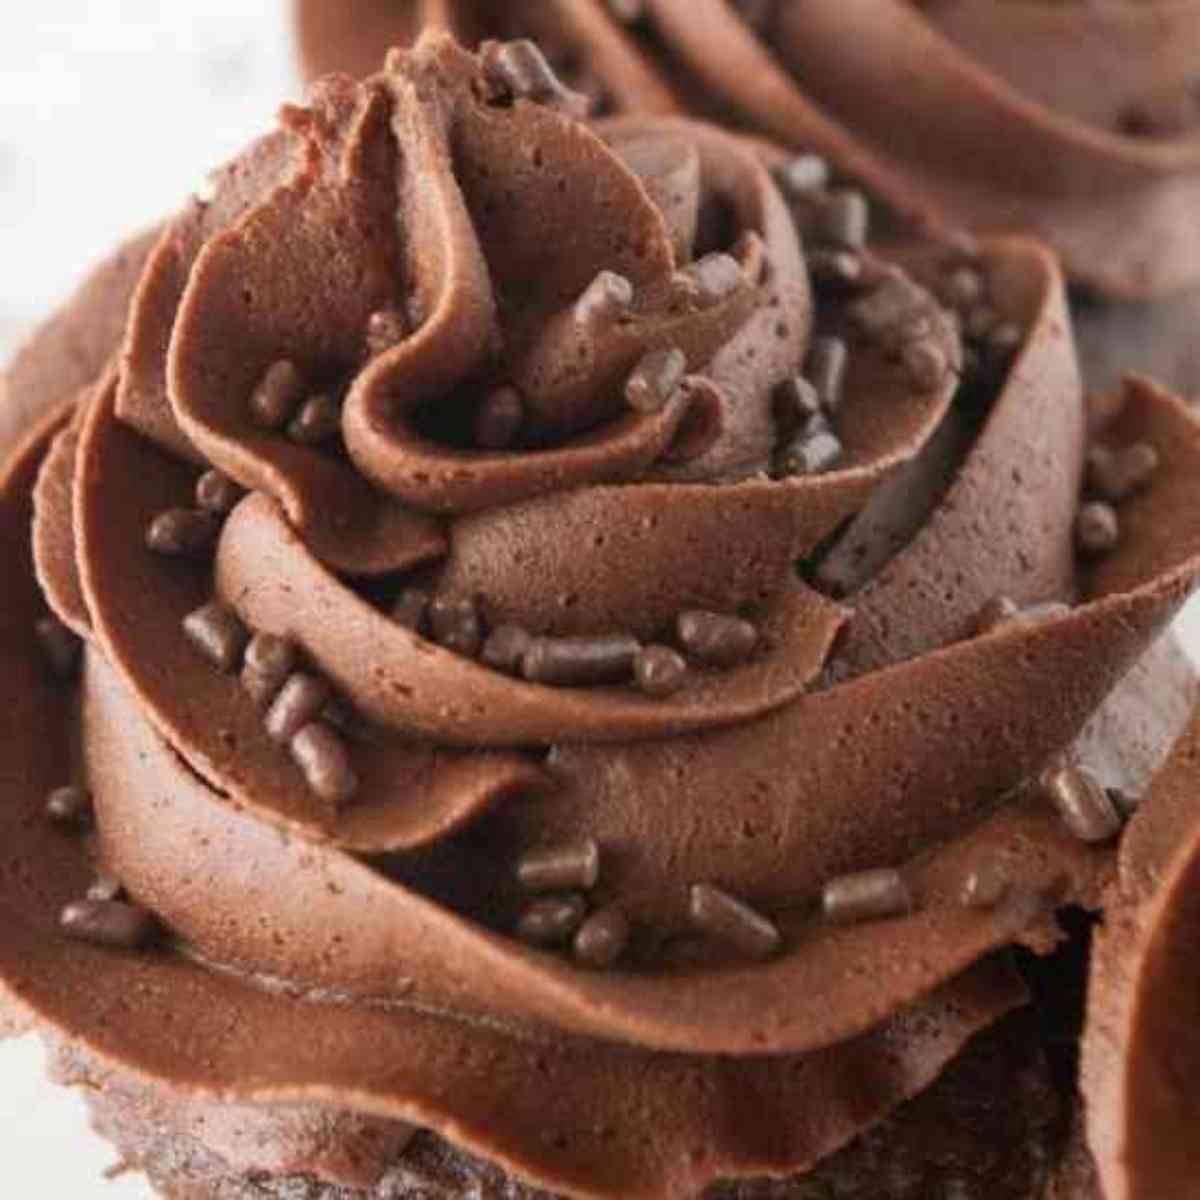 Cupcake Frosted with chocolate buttercream